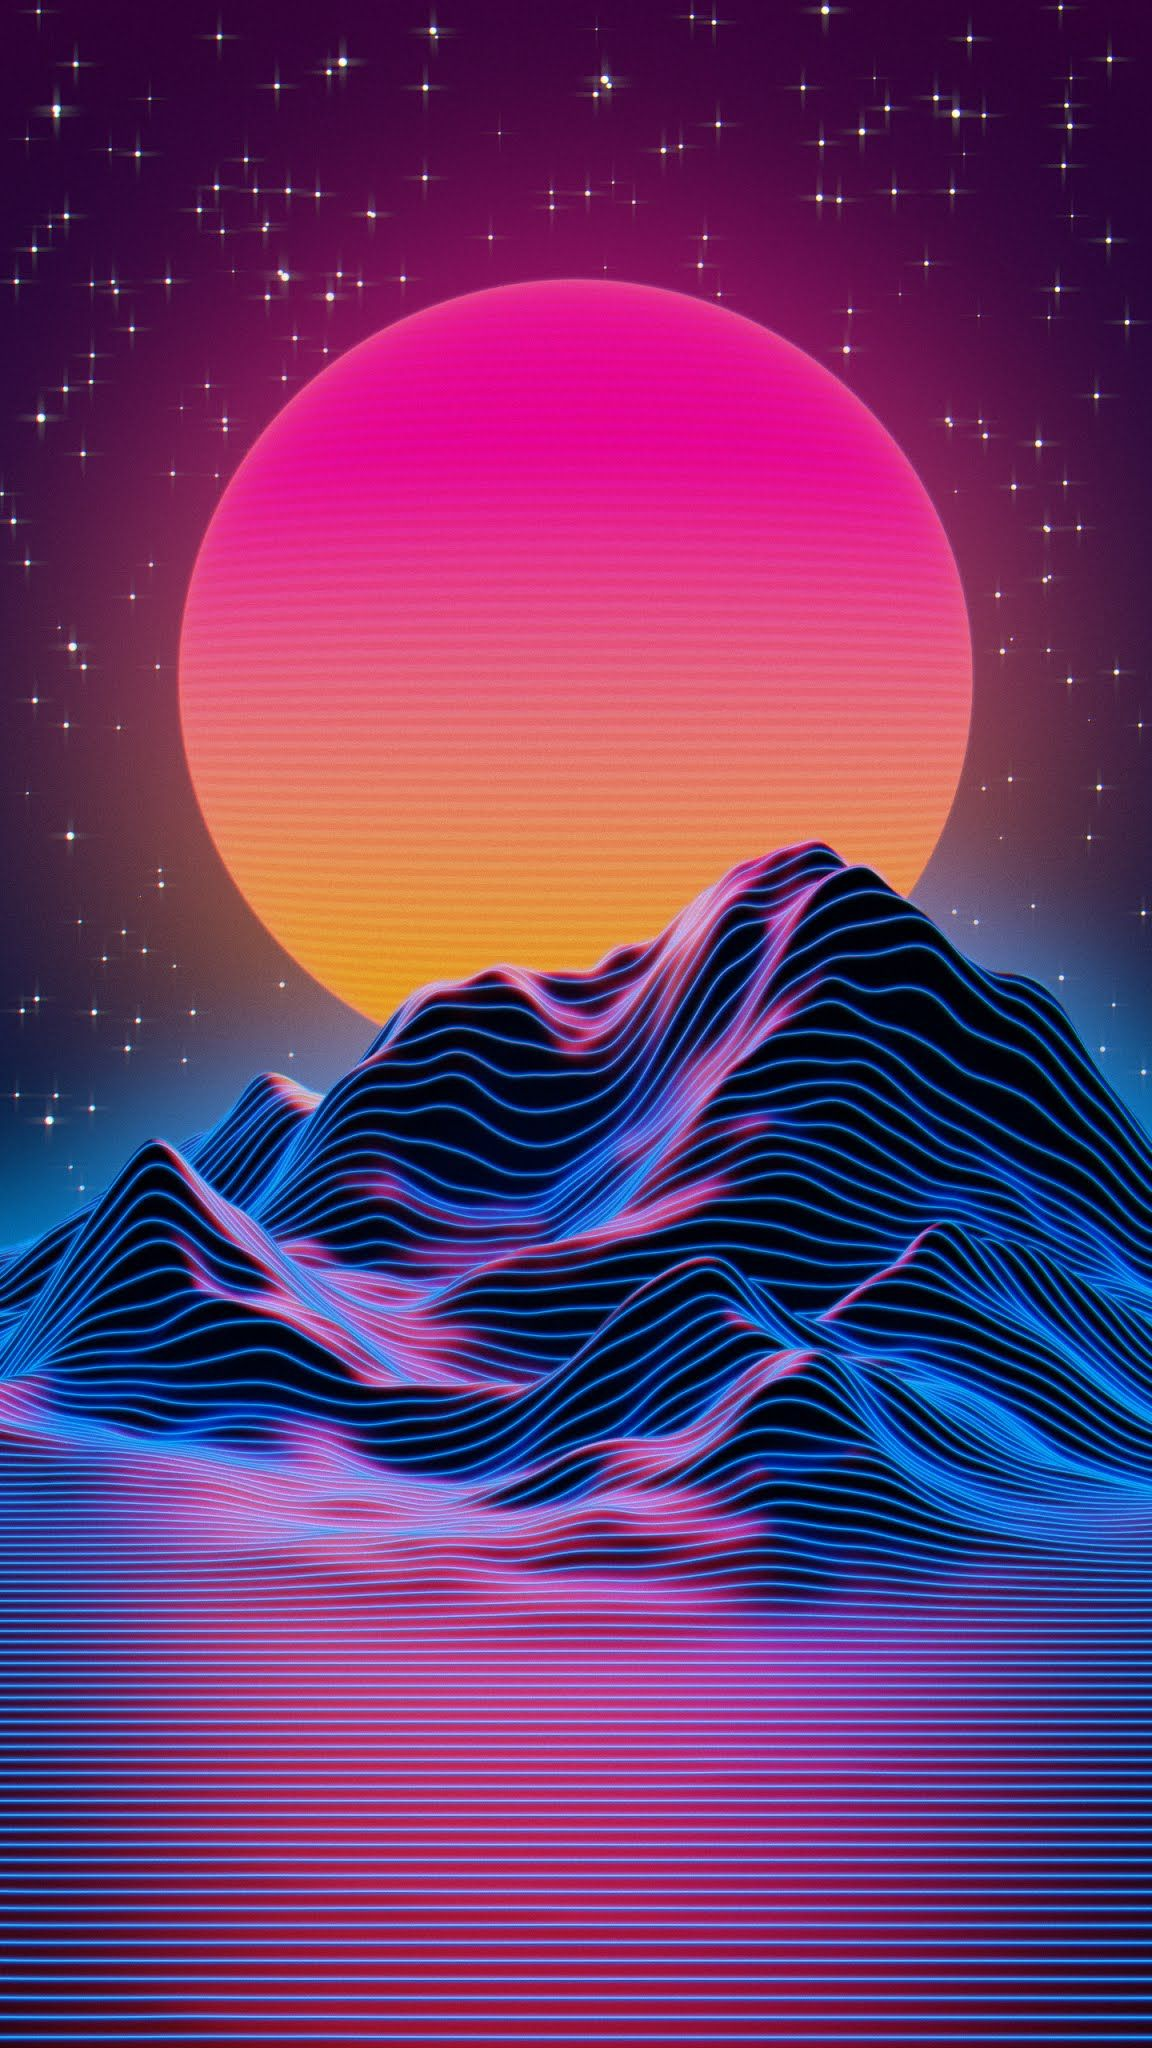 Pin by ( )𝔭𝔢𝔫𝔧𝔰( ) on »Aesthetic« in 2020 Vaporwave